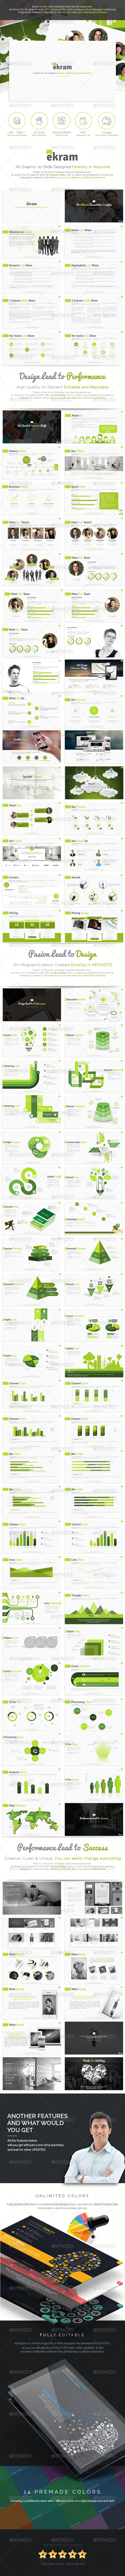 GraphicRiver Ekram The Most Complete Keynote Template 8245650